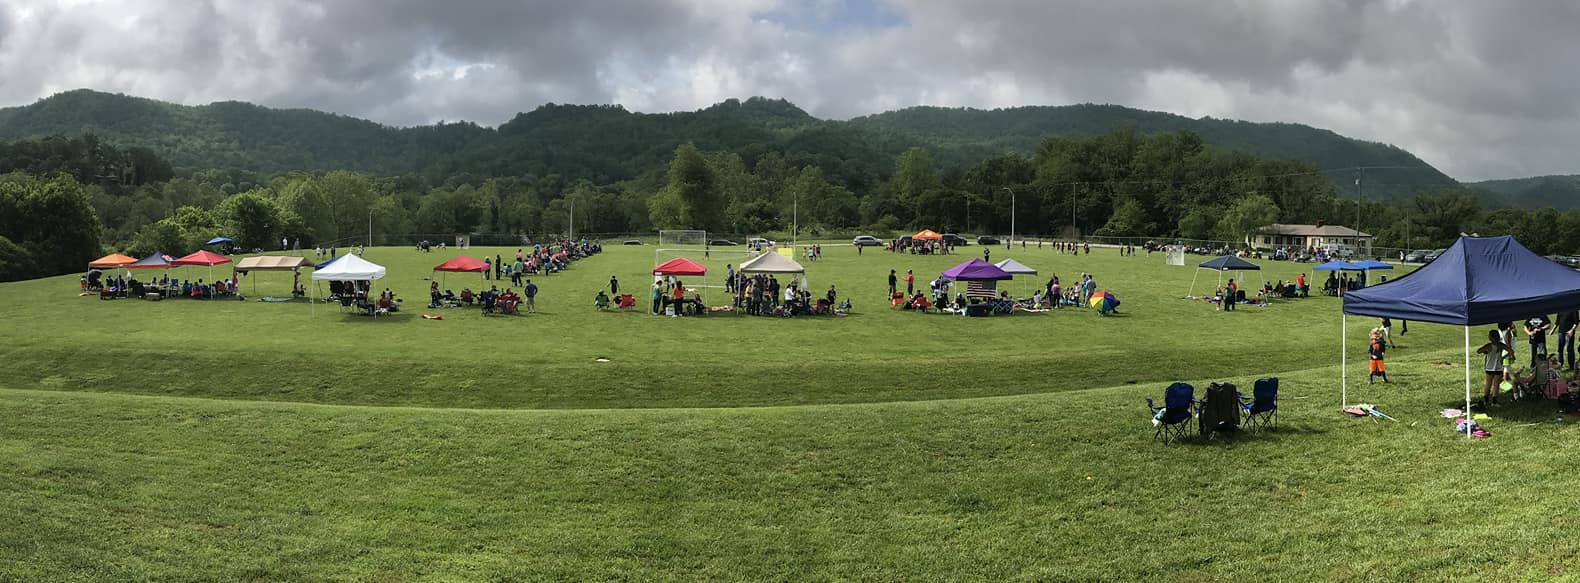 Mountain Spring Fling 2018